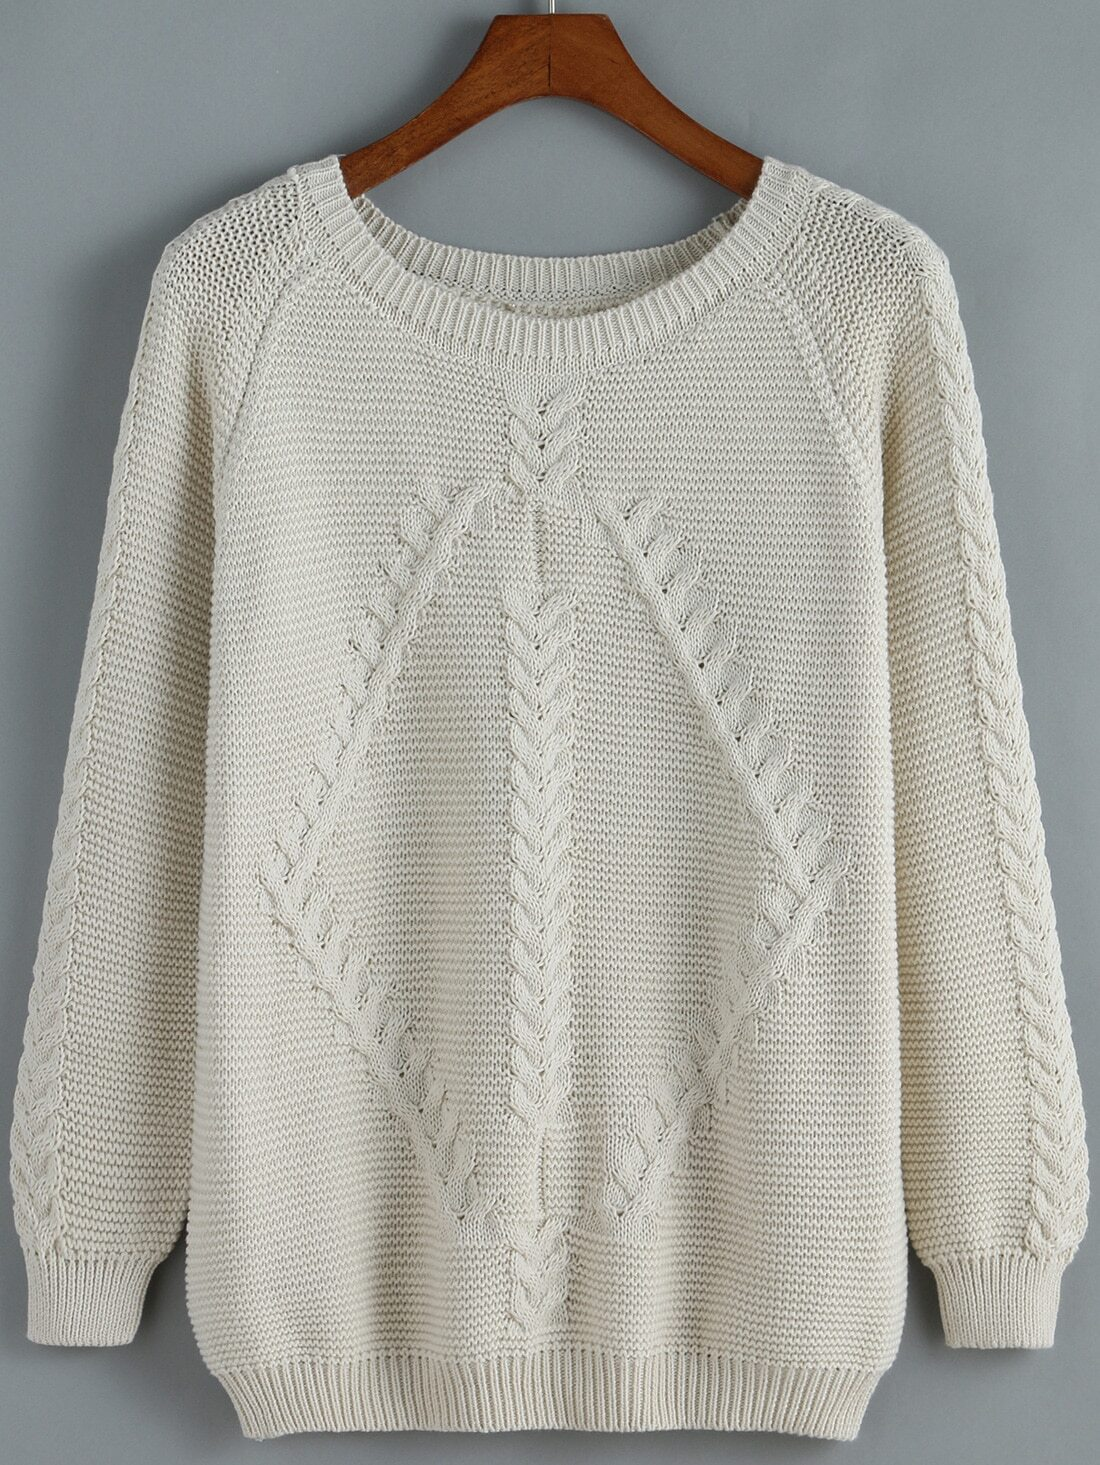 Sweater Knit. Over 20, fabrics in our online store. Discount by the yard.